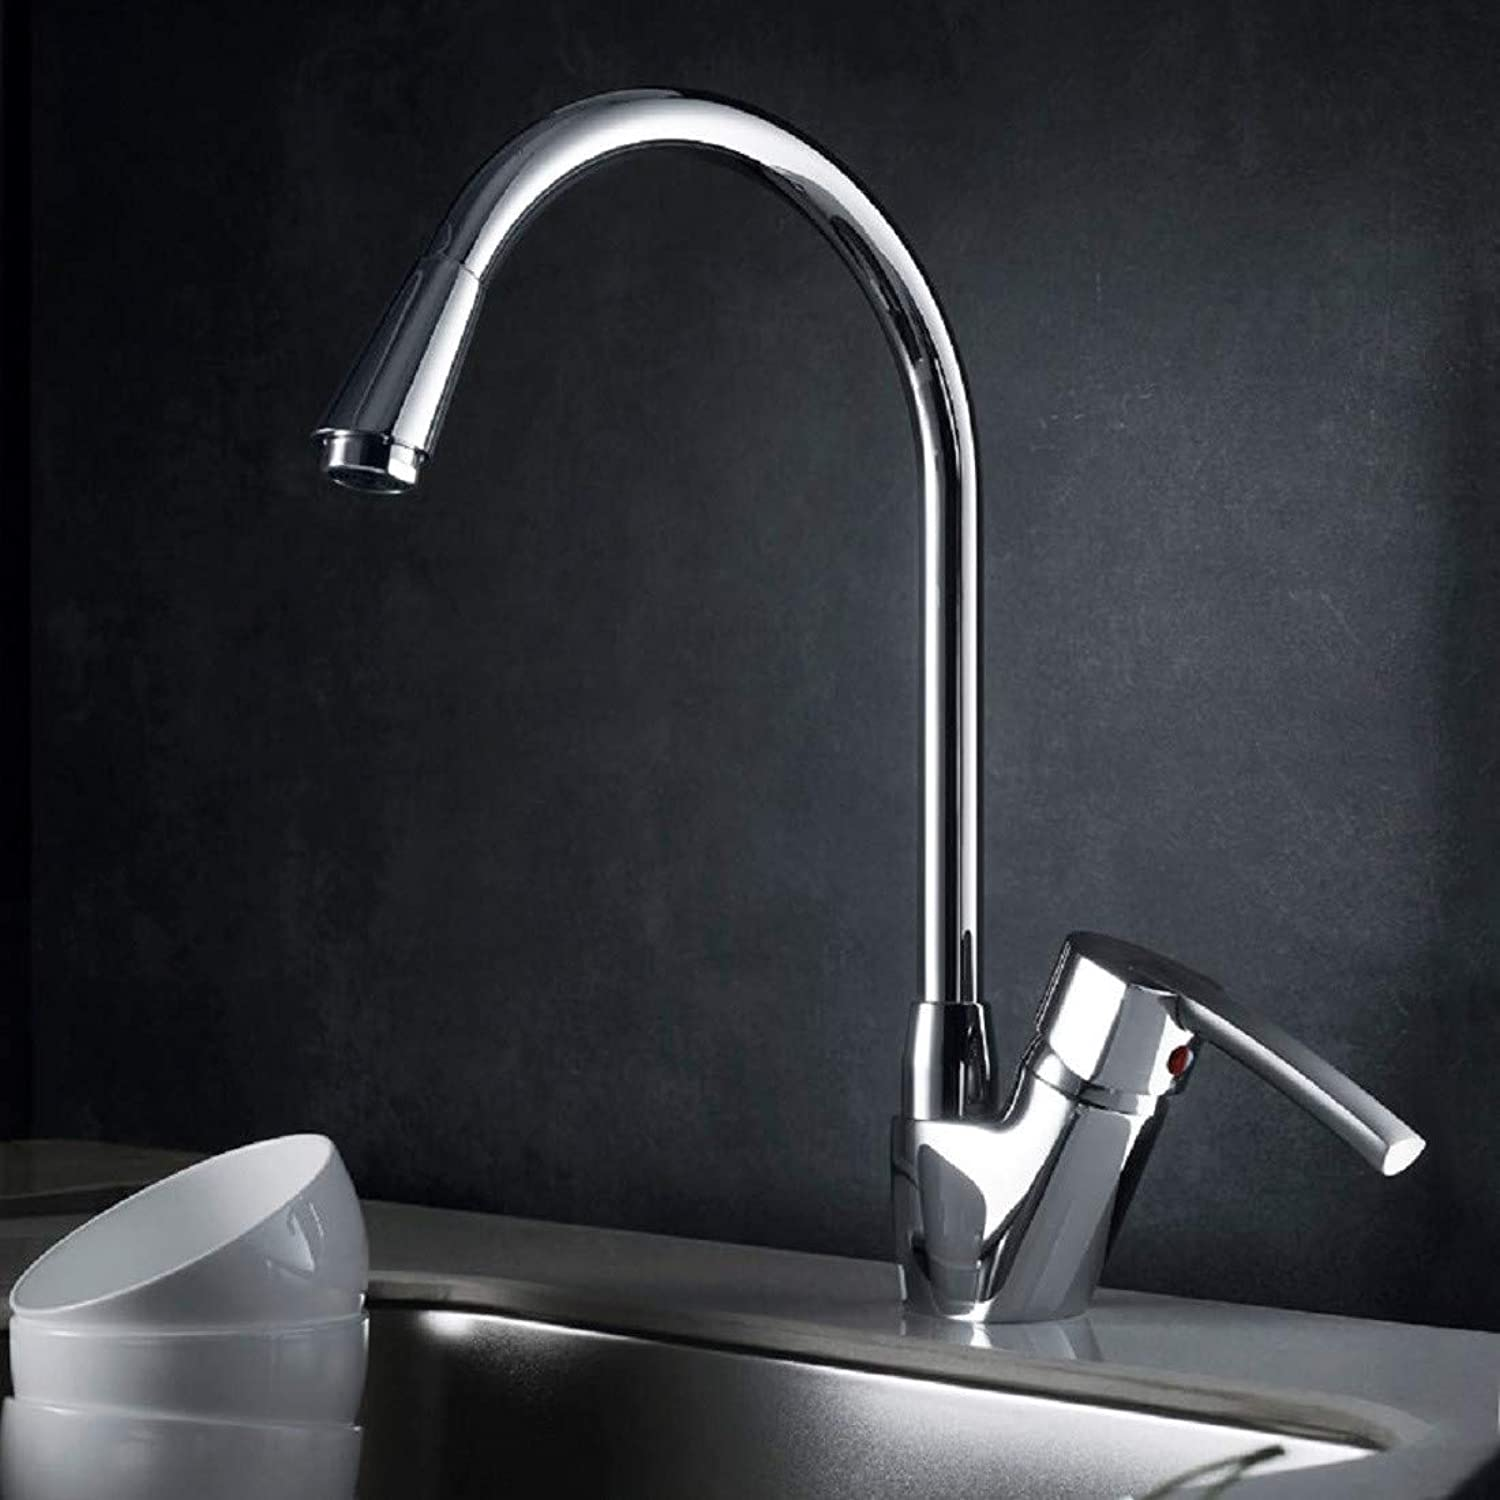 Kitchen Tap Cool-Hot Single-Cold redation of Kitchen Washing Basin with Tap Kitchen Taps Kitchen Sink Mixer Taps Basin Tap